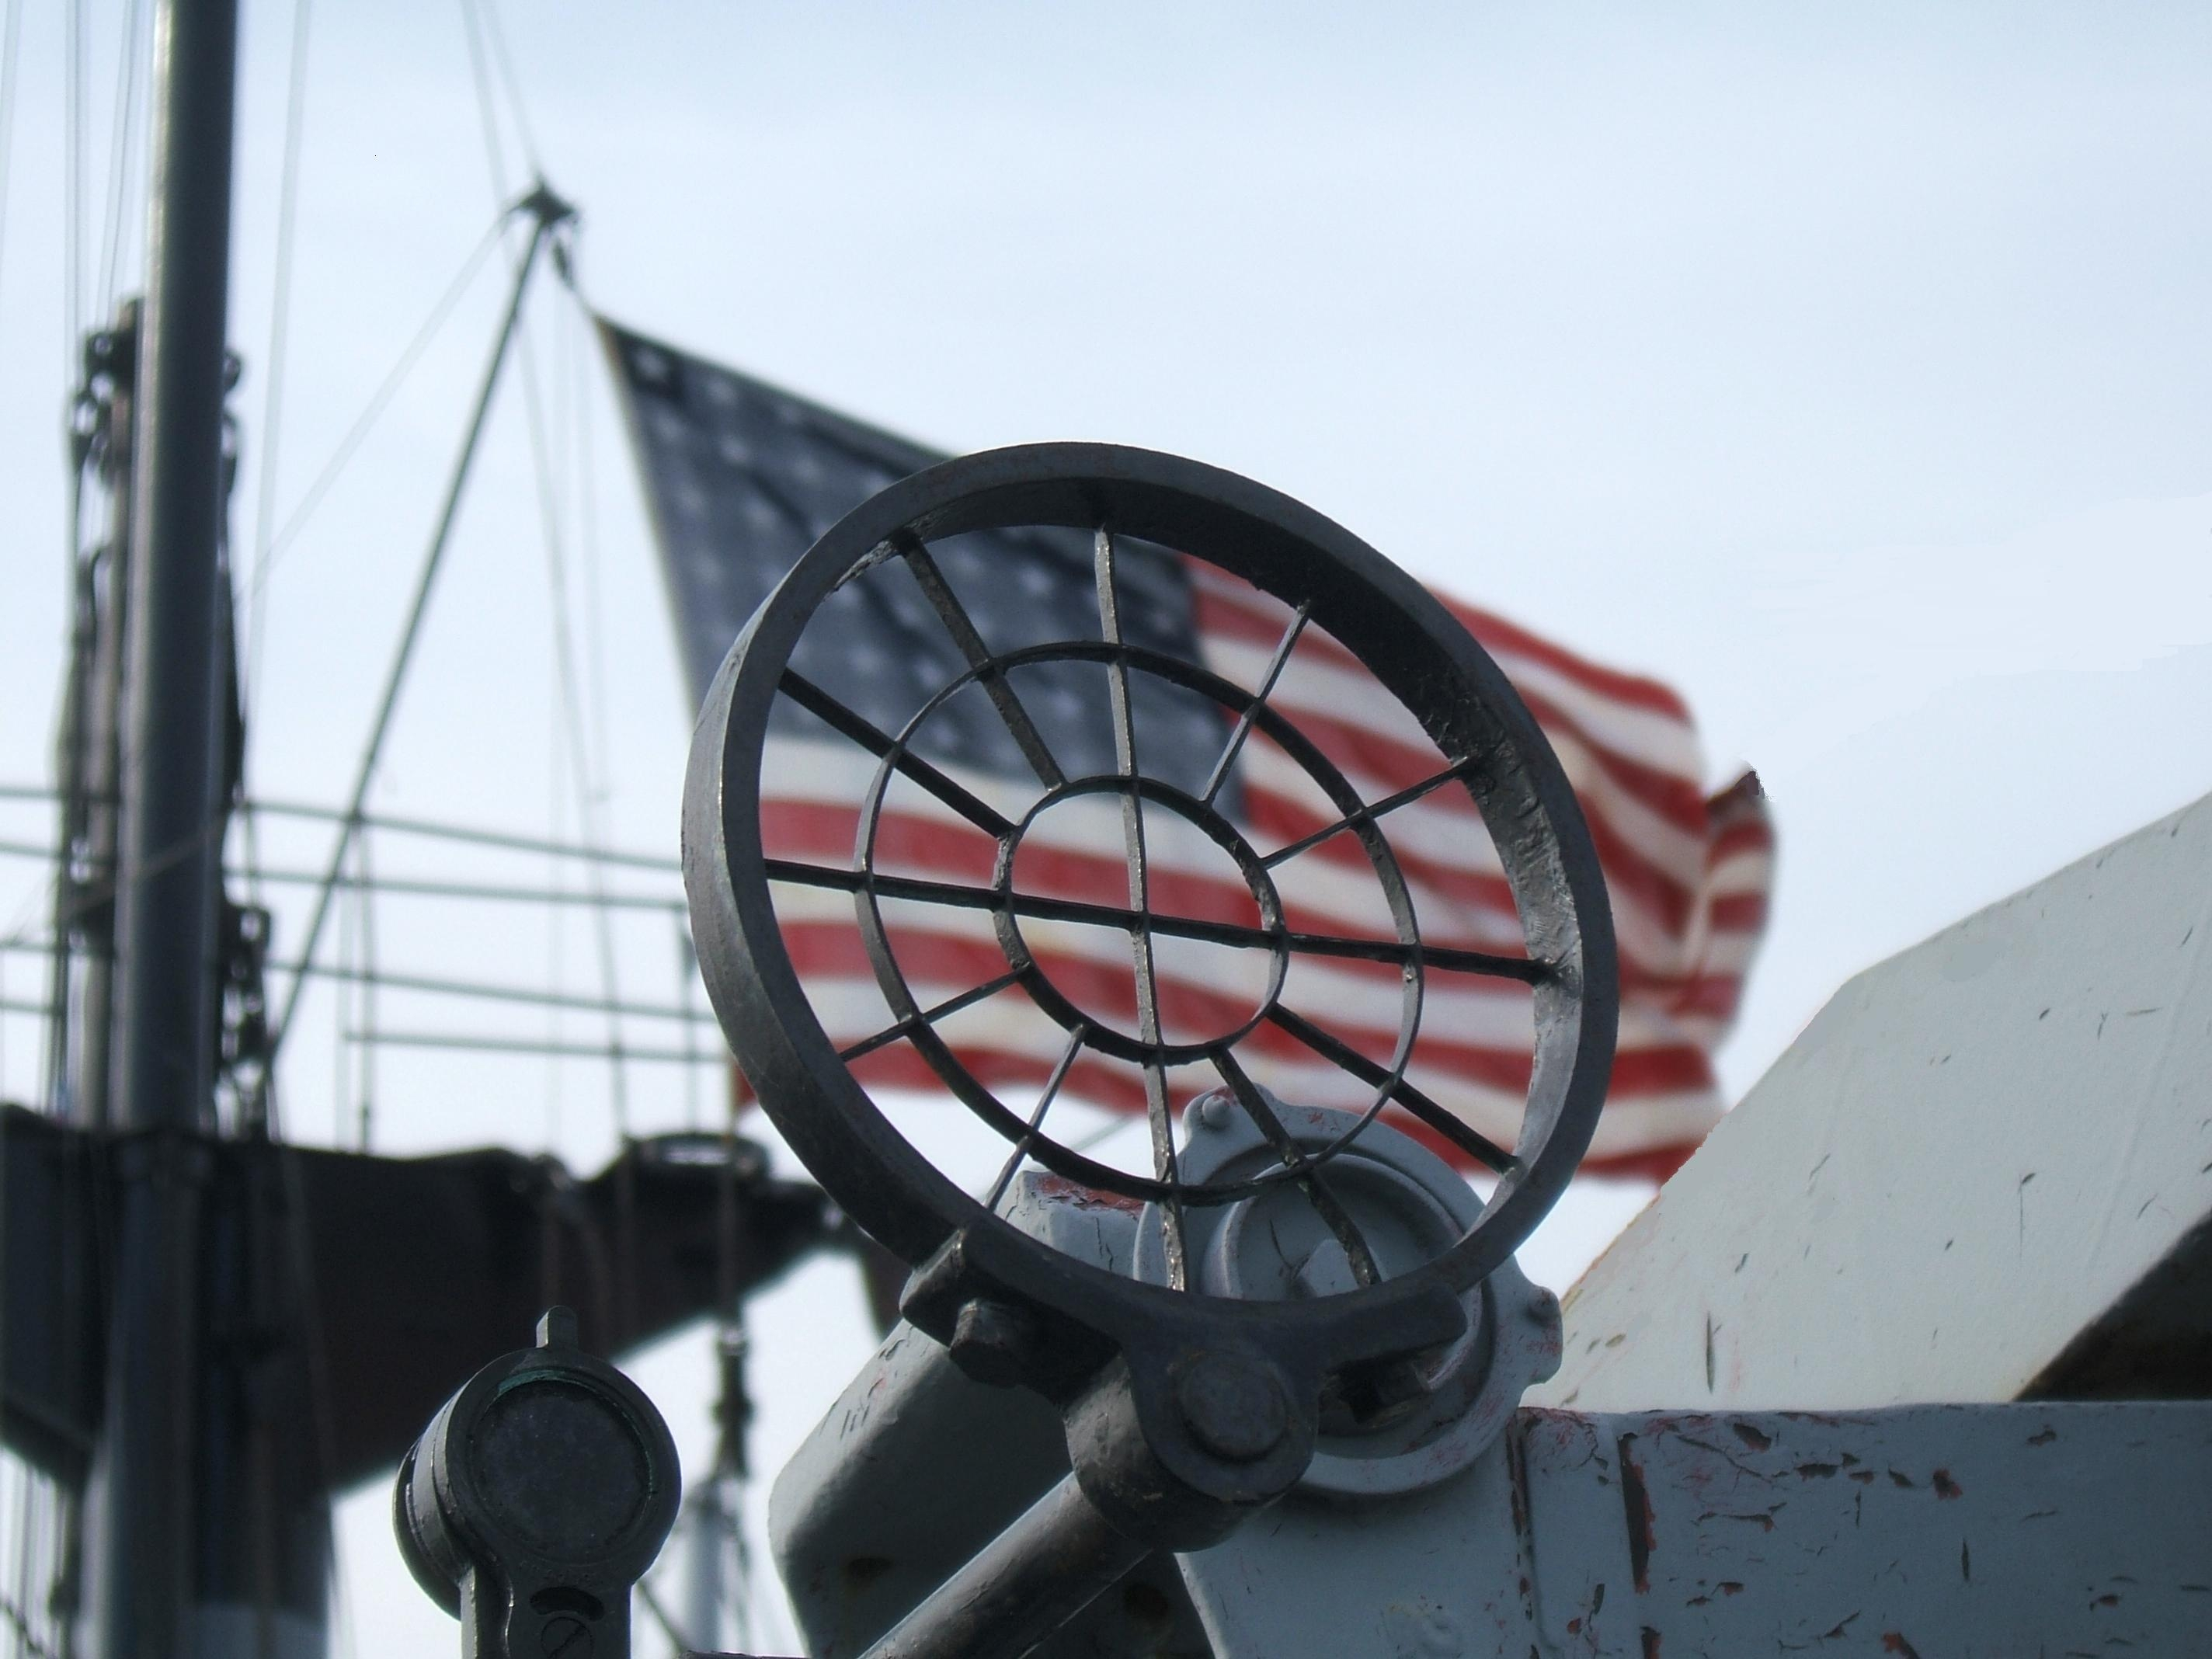 photograph of gunsight with u.s. flag in background